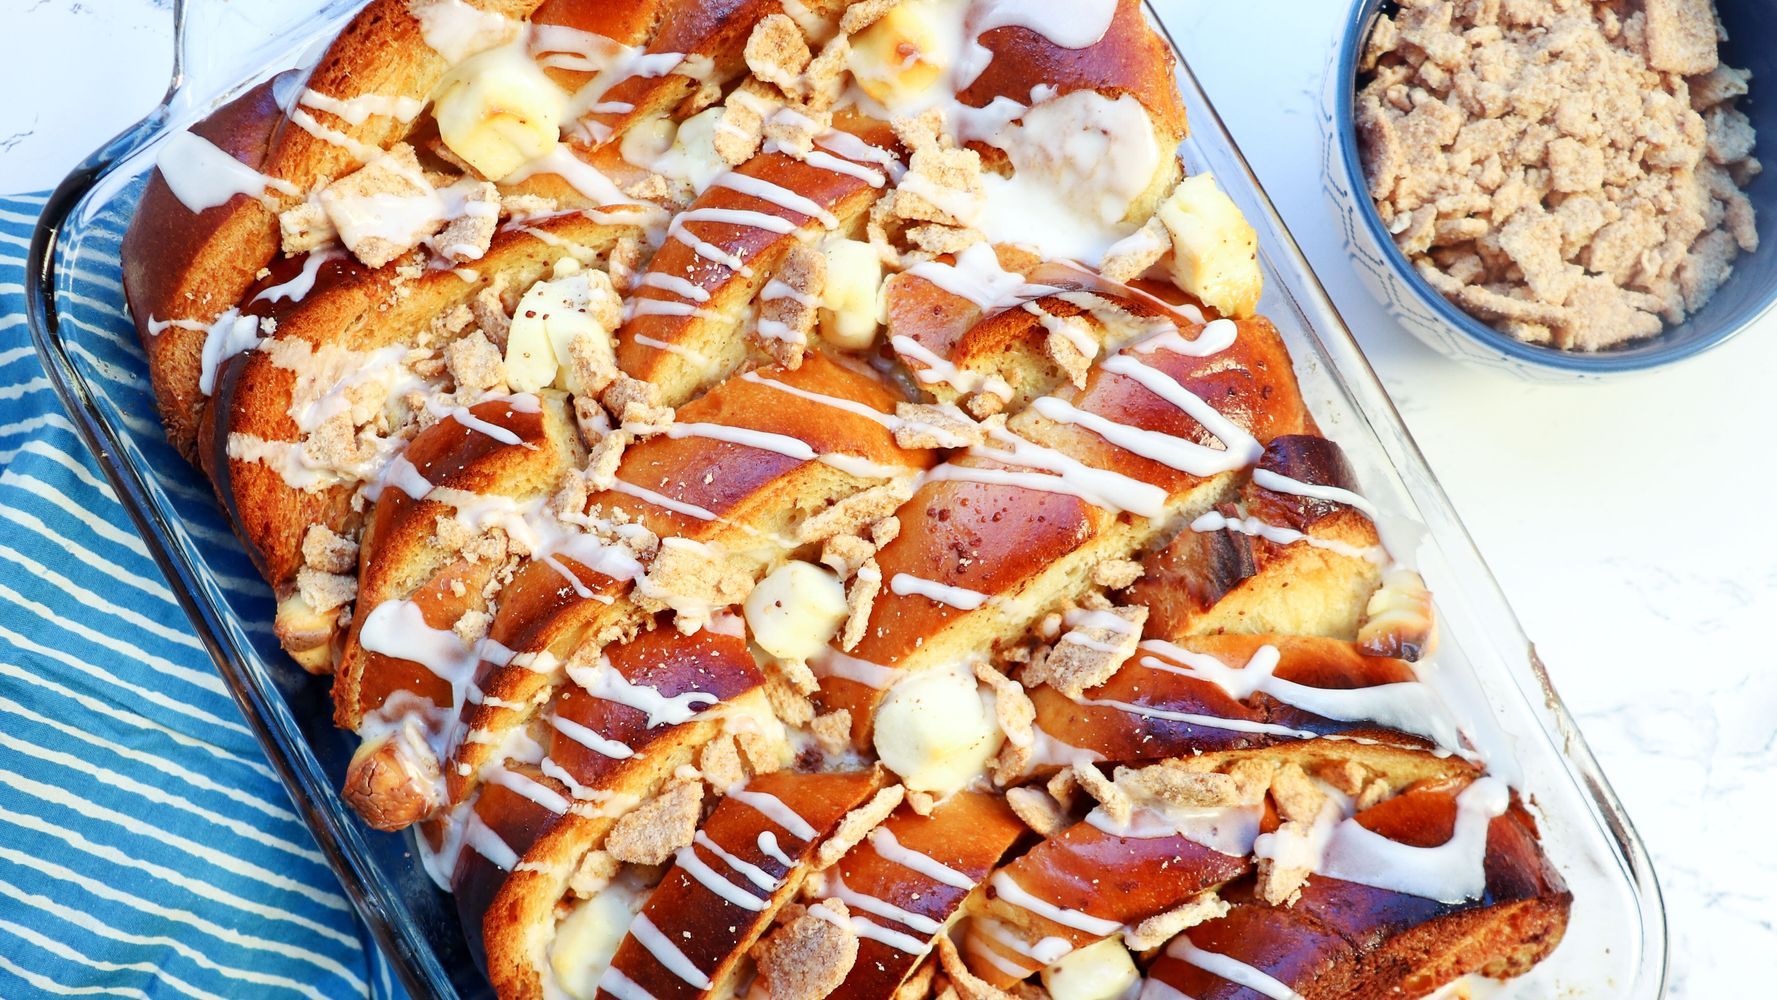 Cinnamon Bun Casserole, The Ultimate Make-Ahead Holiday Brunch